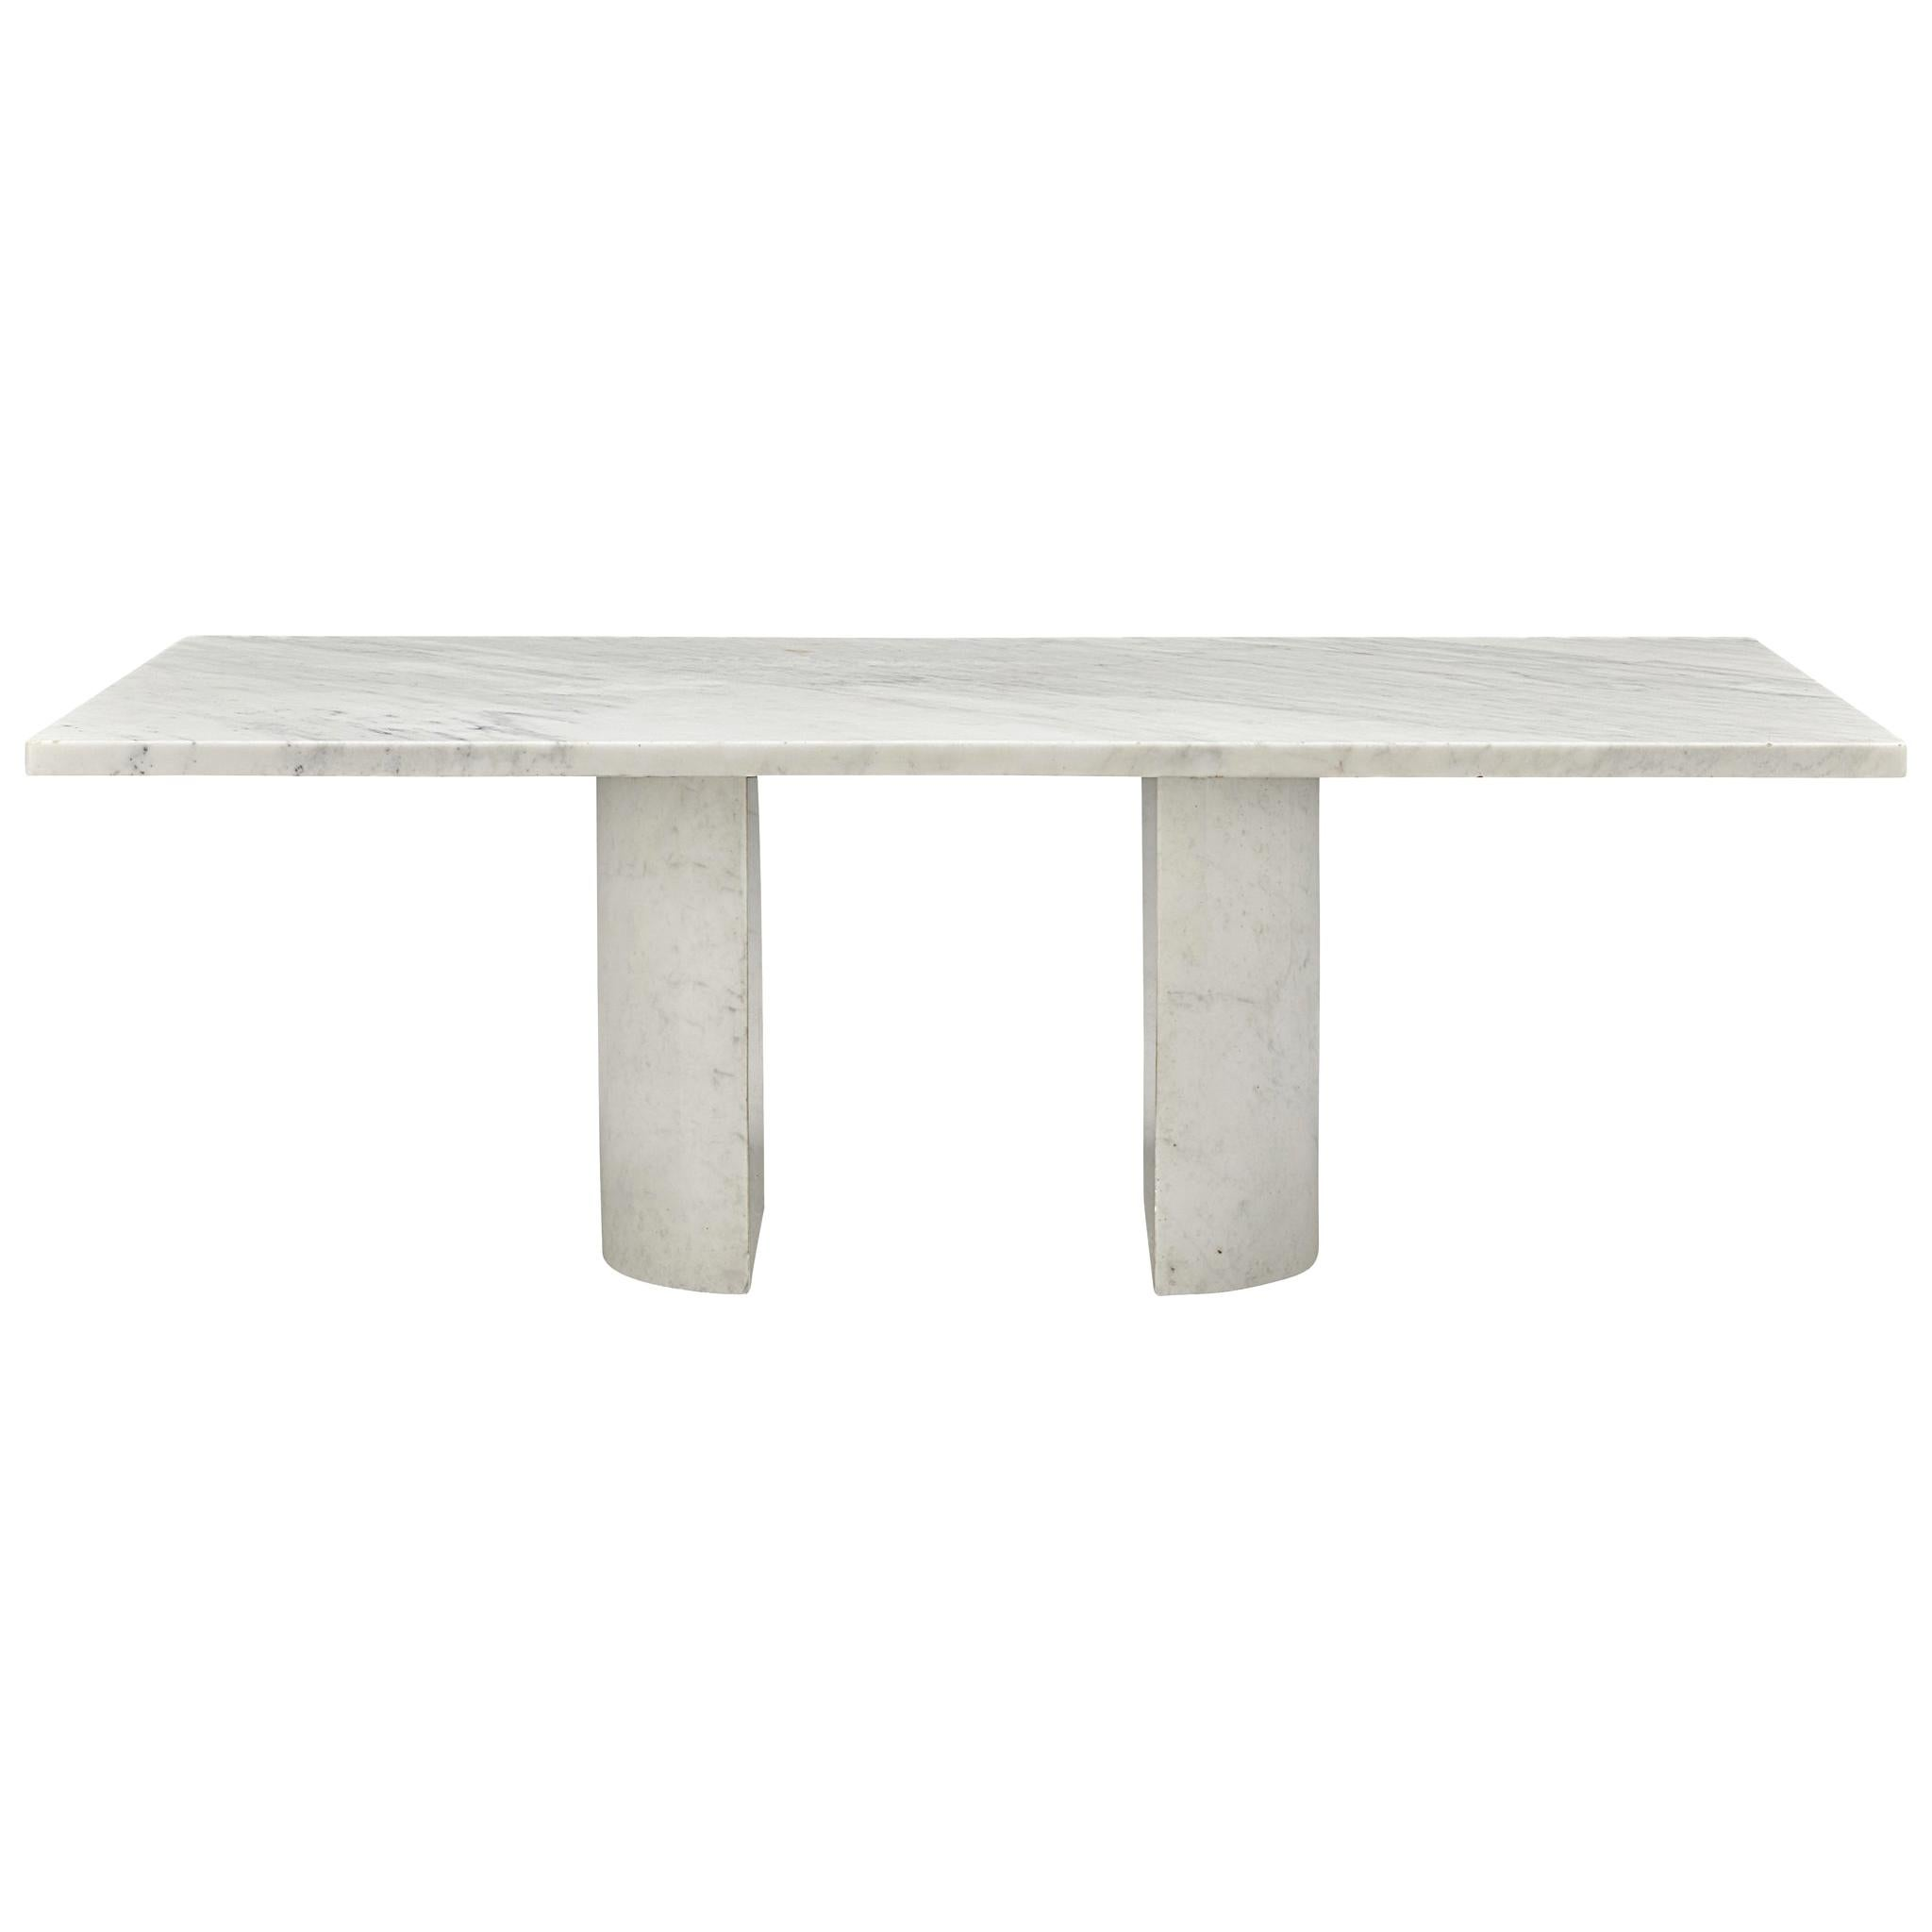 Large Coffee Table in Carrara Marble